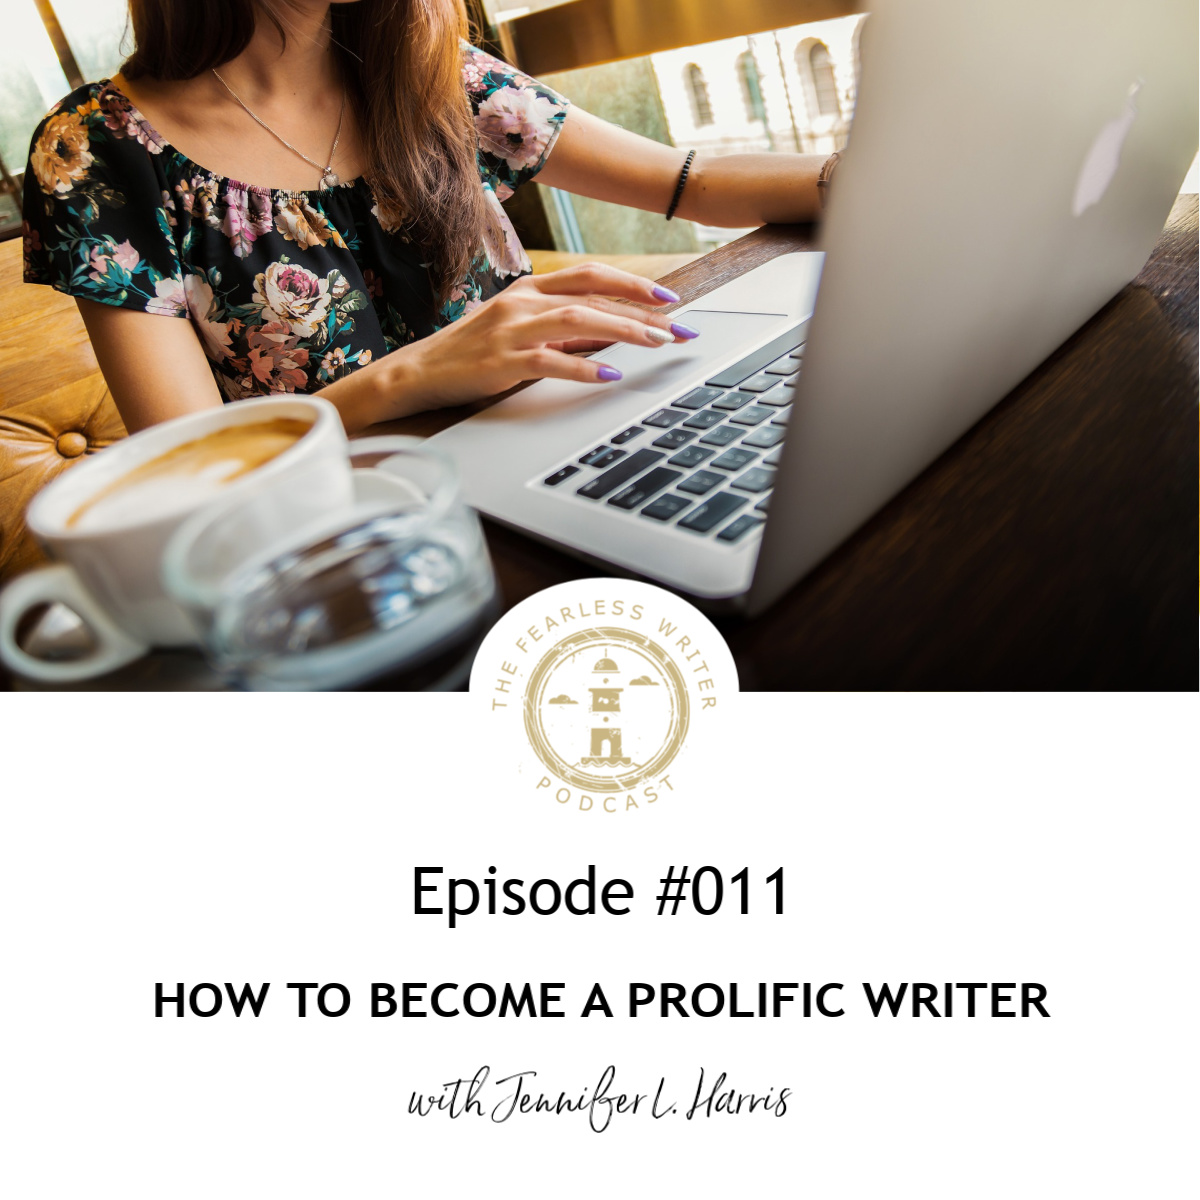 Ep. 011: How to Become a Prolific Writer